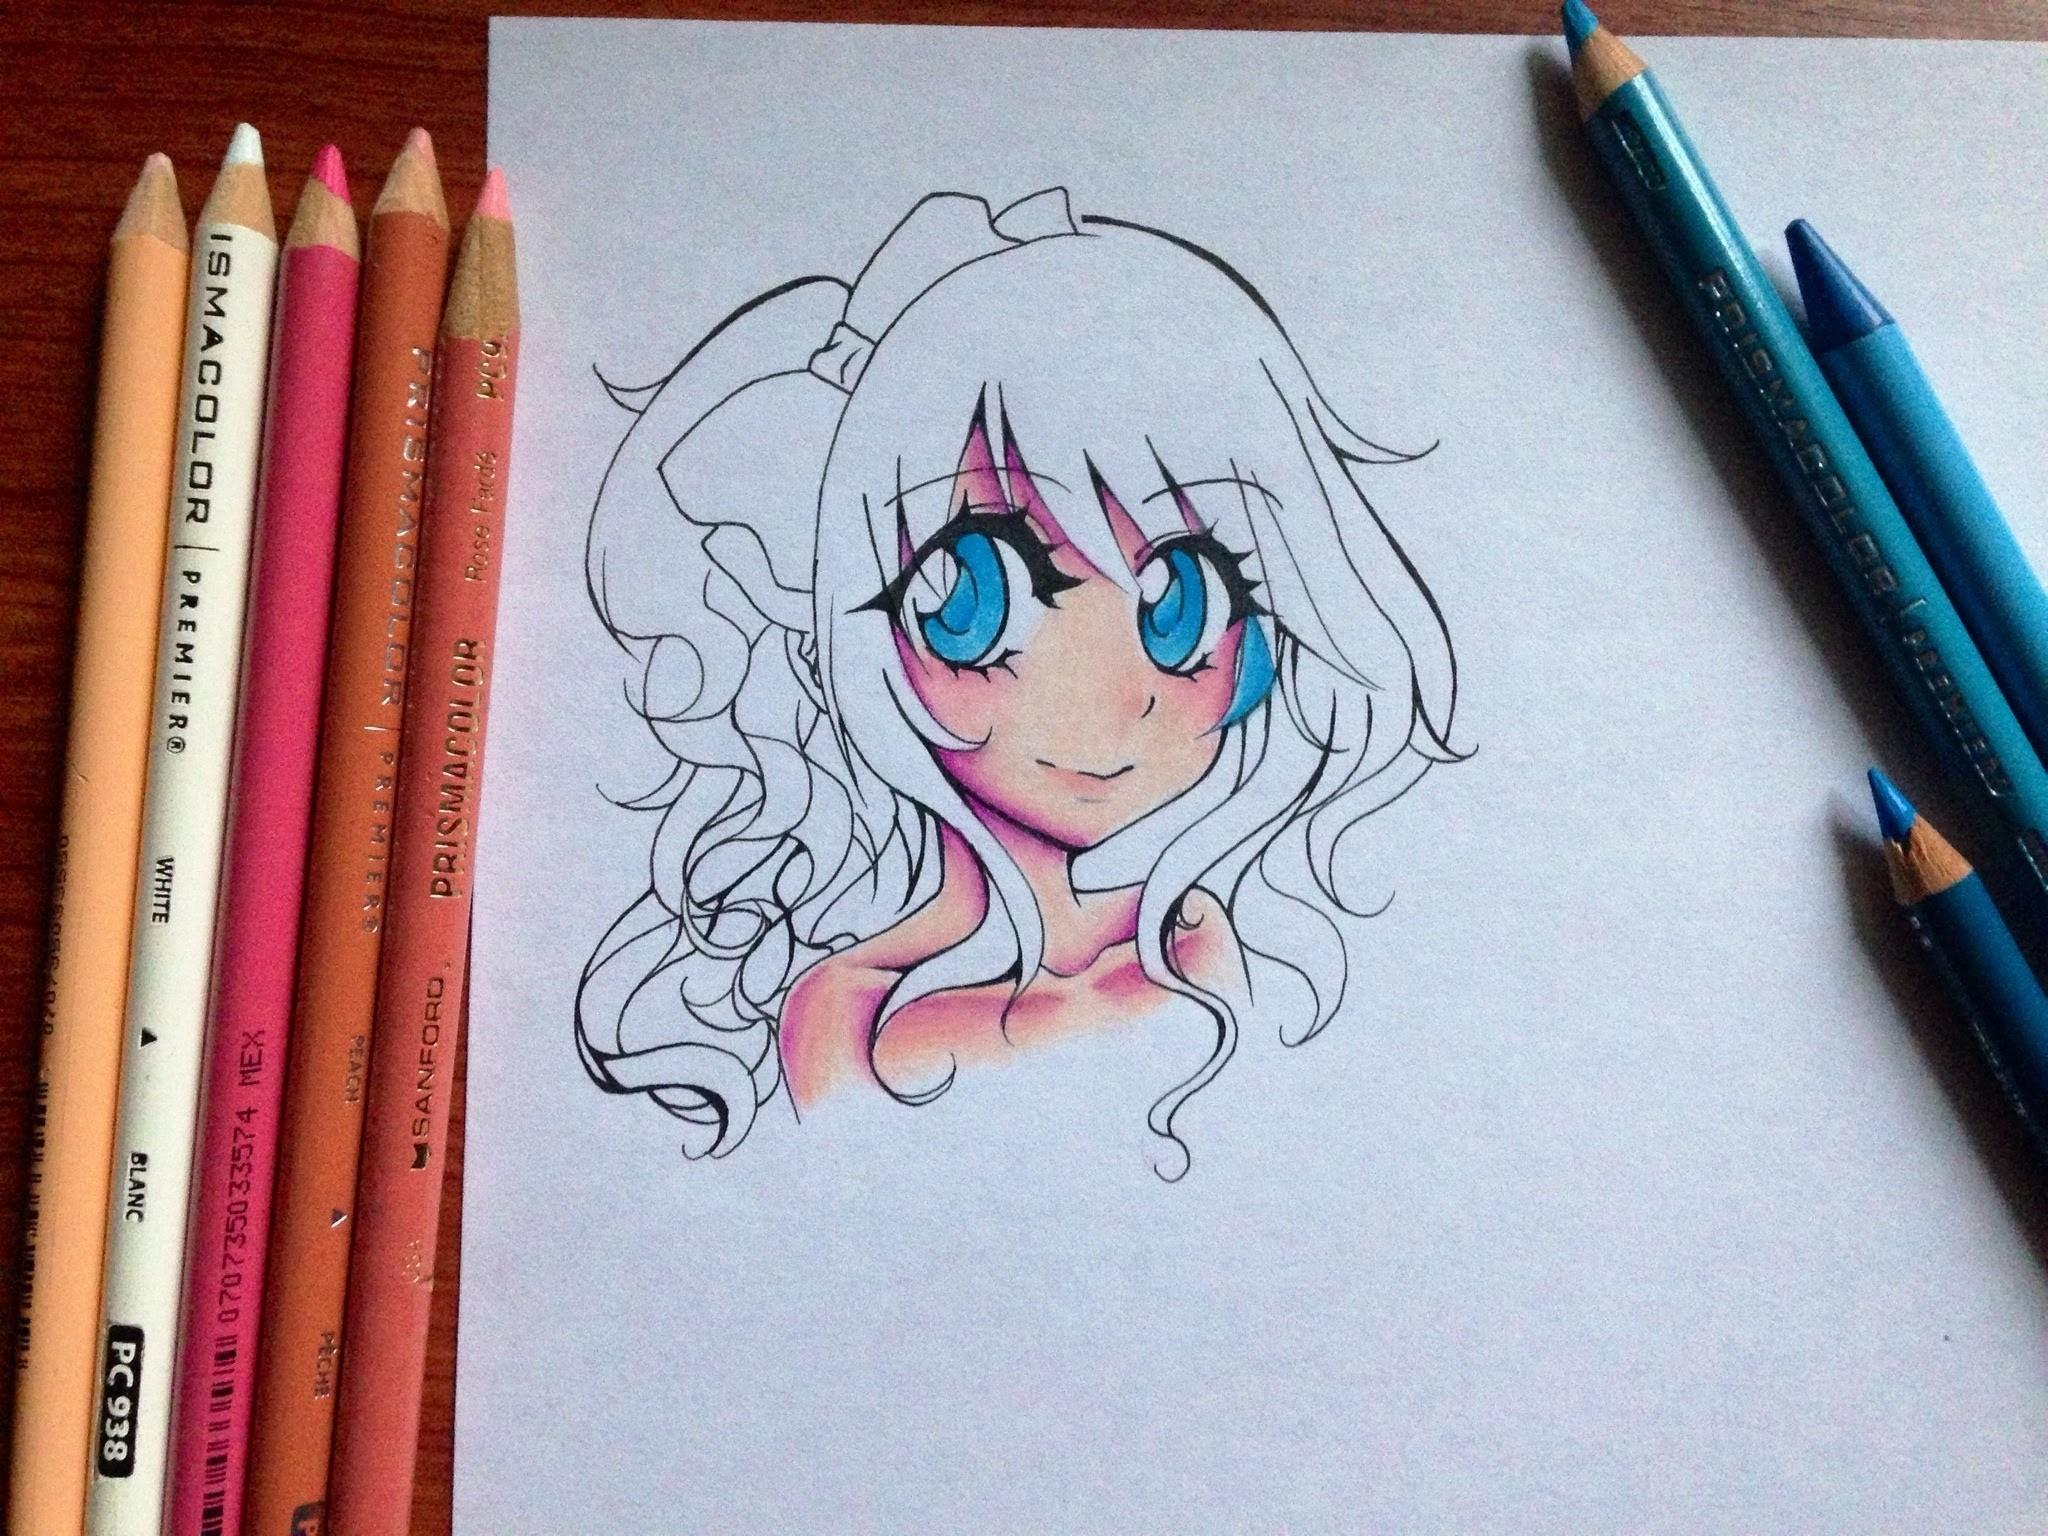 Coloring Anime Skin Colored Pencils Fun Pages